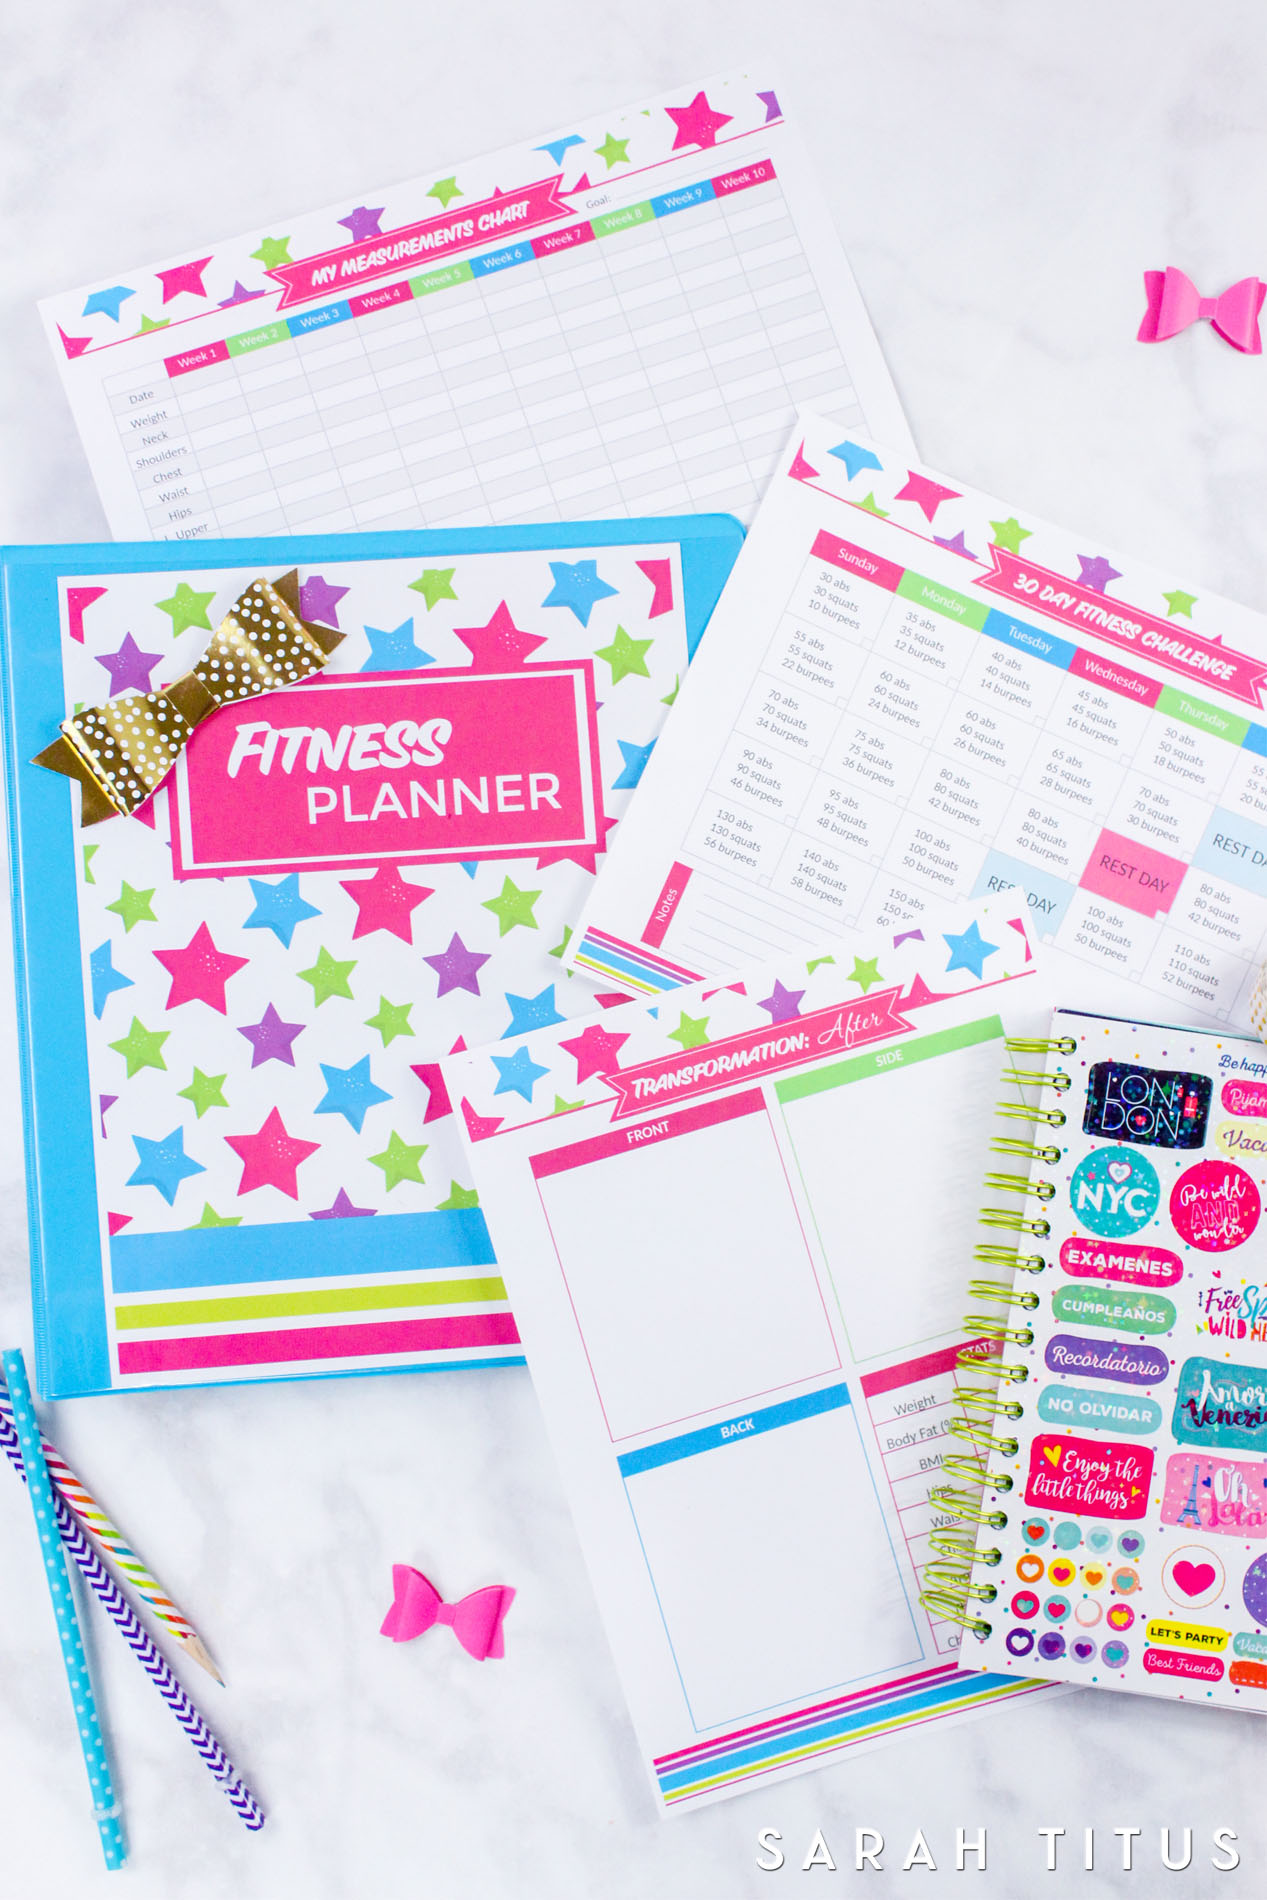 photograph relating to Free Printable Fitness Planner titled Physical fitness Planner - Sarah Titus